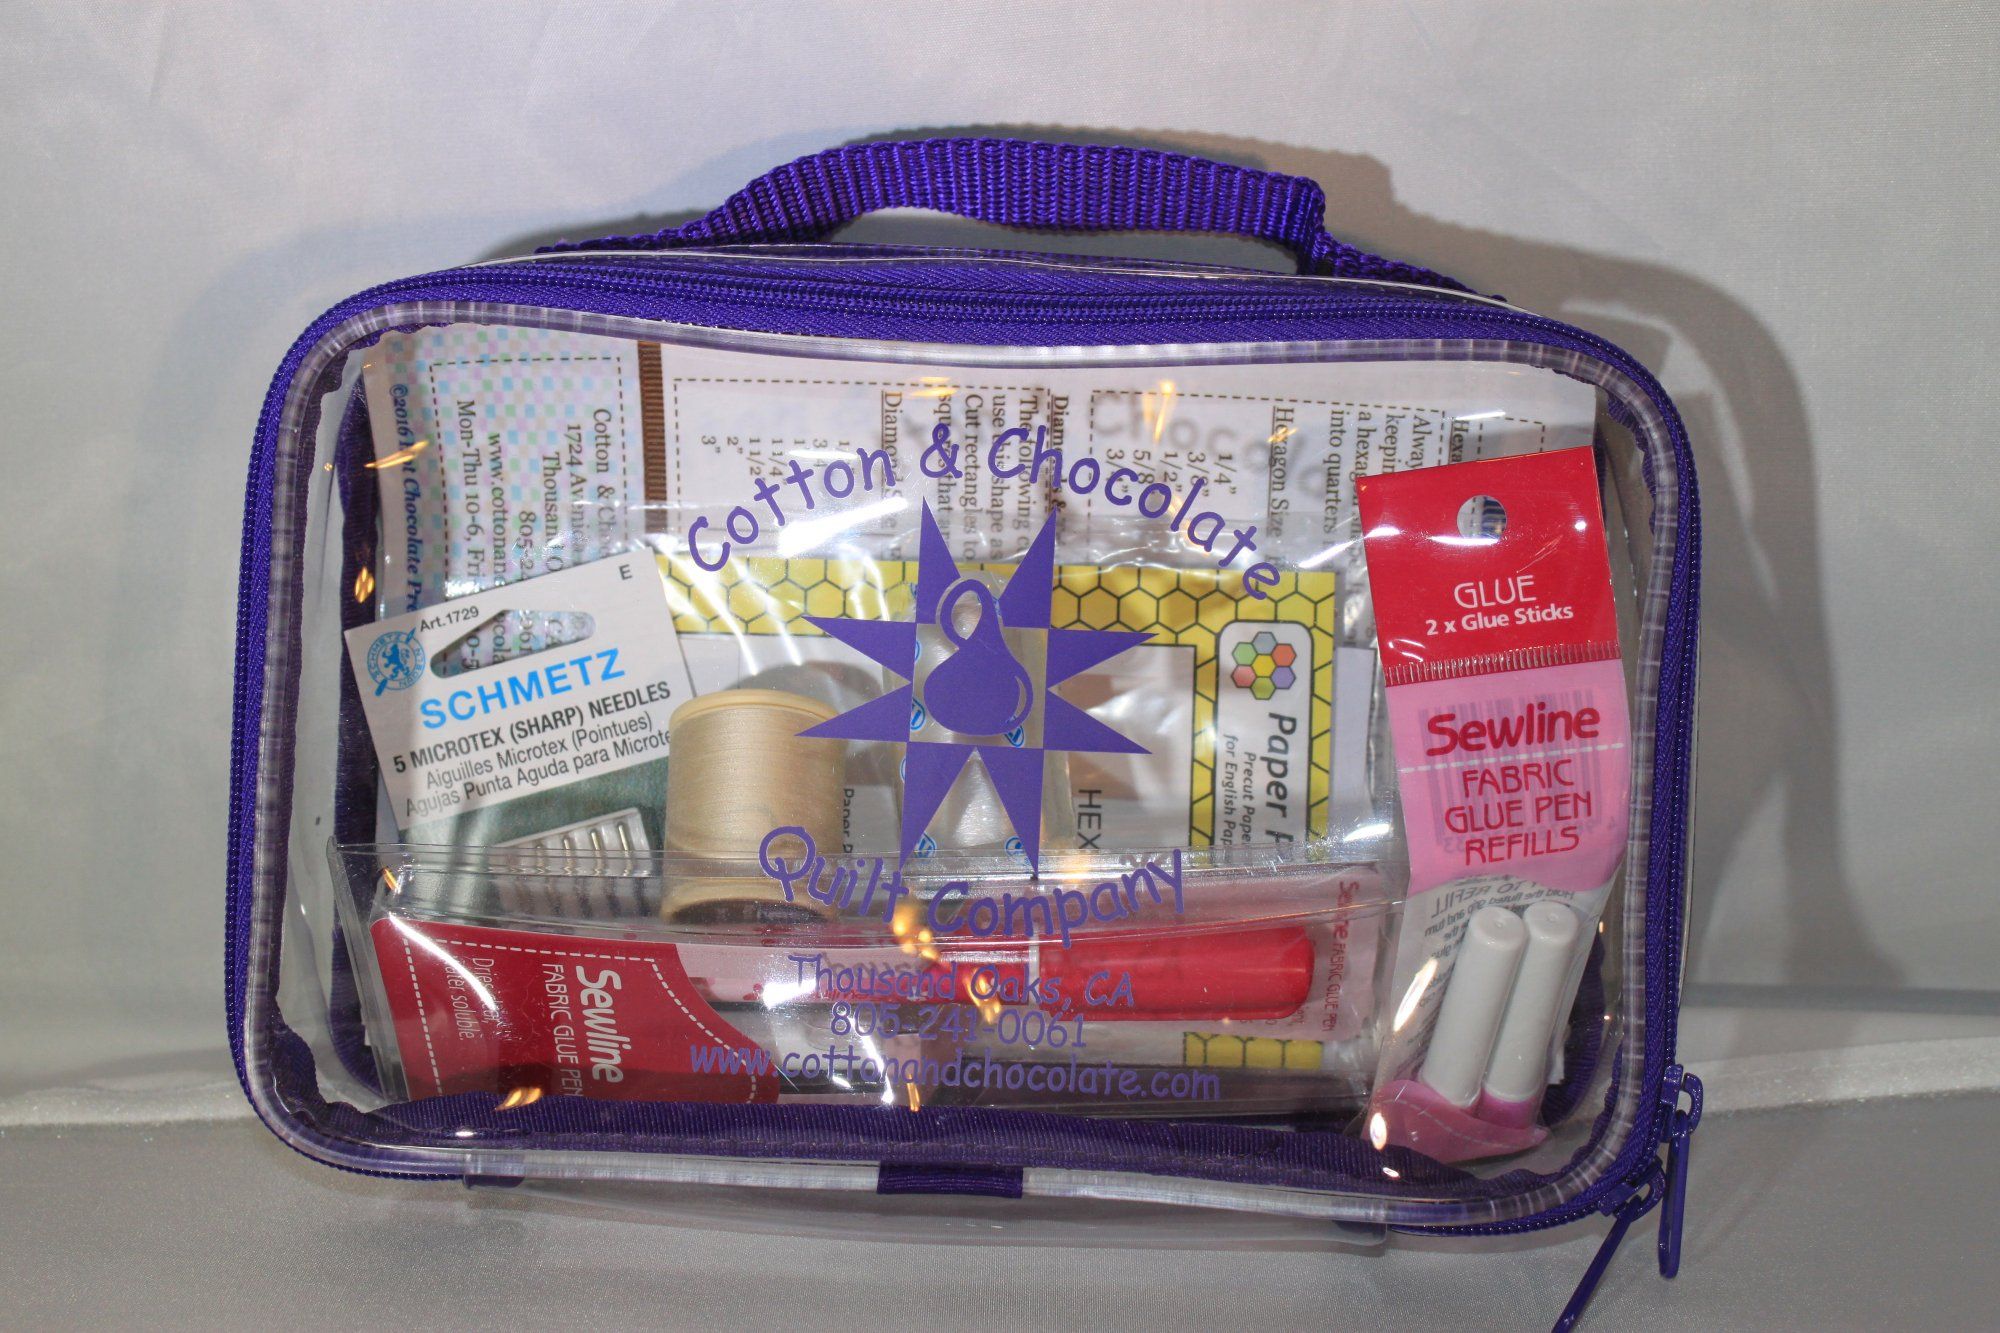 Hex Flower DELUXE Machine Starter Kit-  With tech sheet and Project Bag